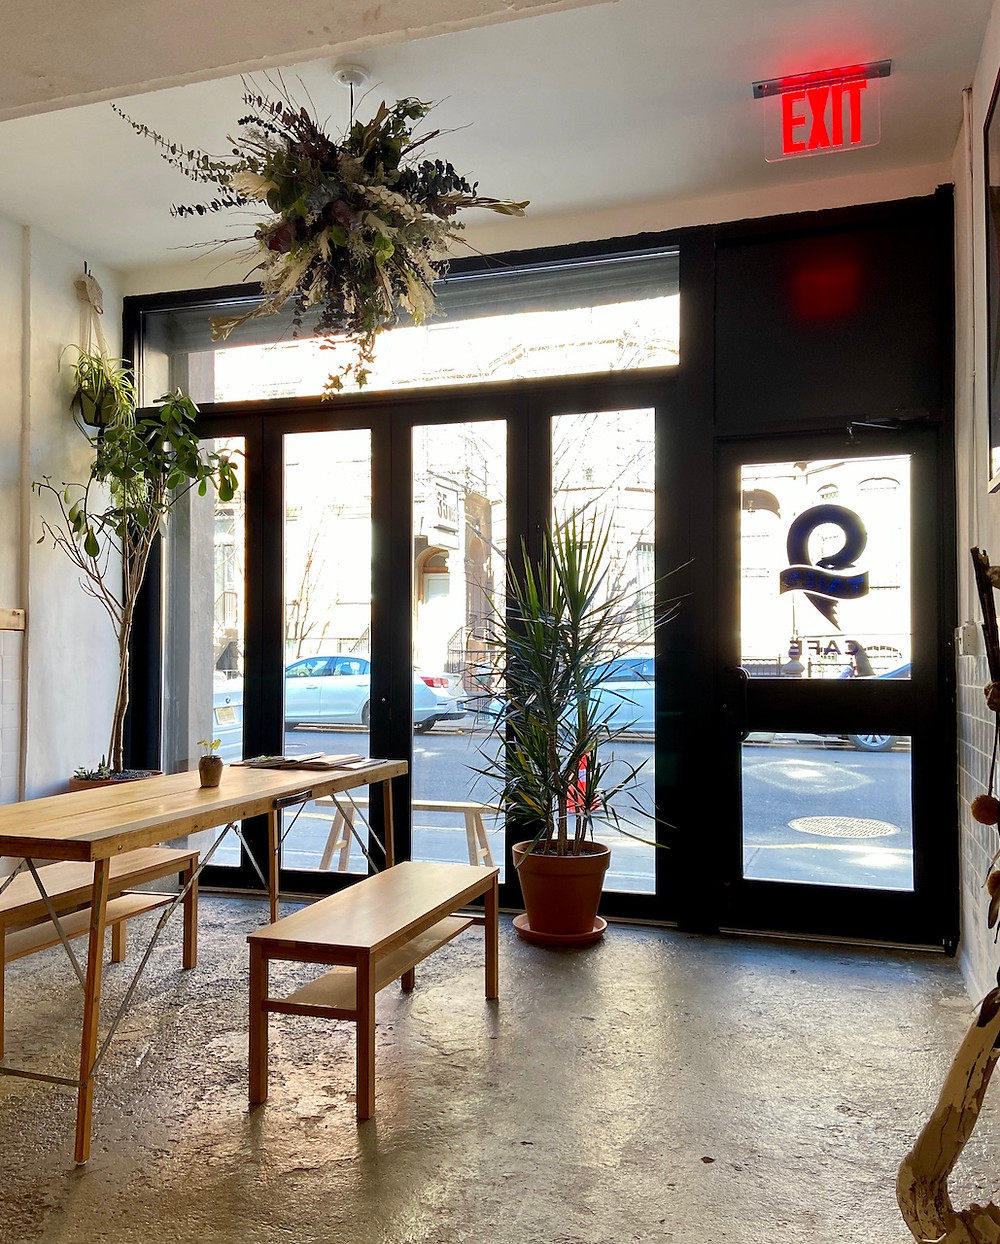 New Harlem coffee shop 9 Tails is located on the ground floor of a historic brownstone